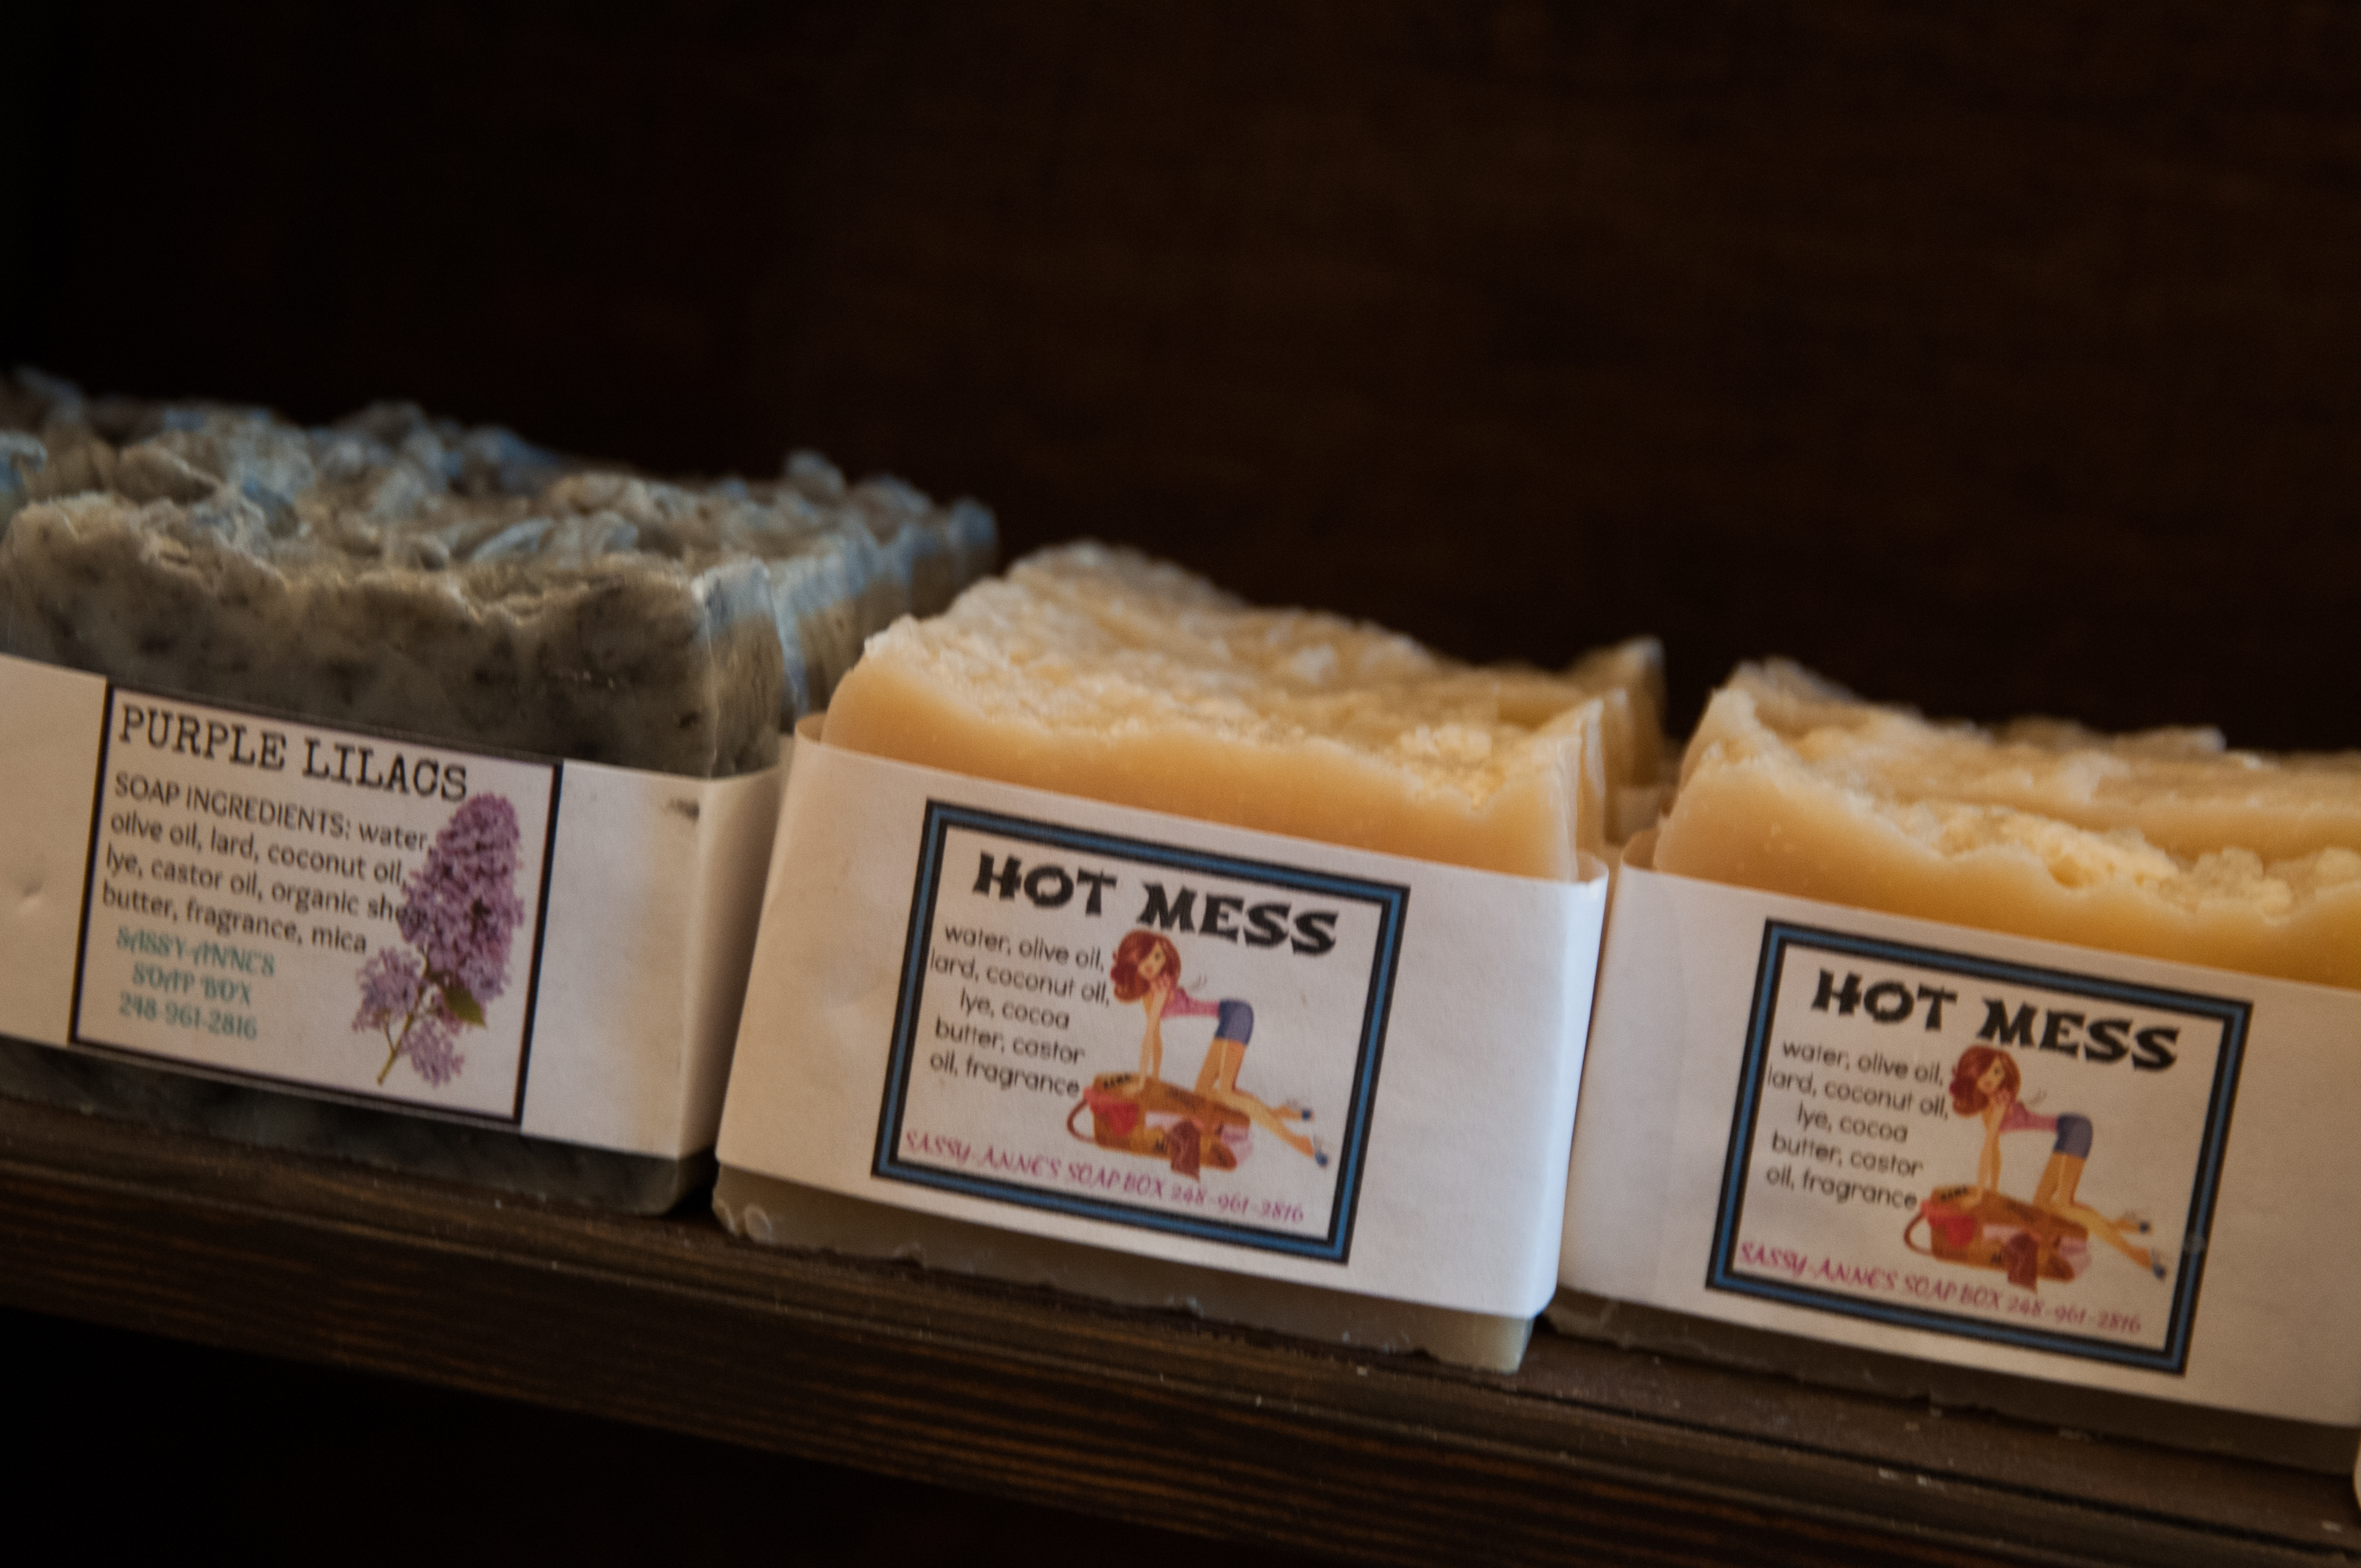 Hand-crafted soaps